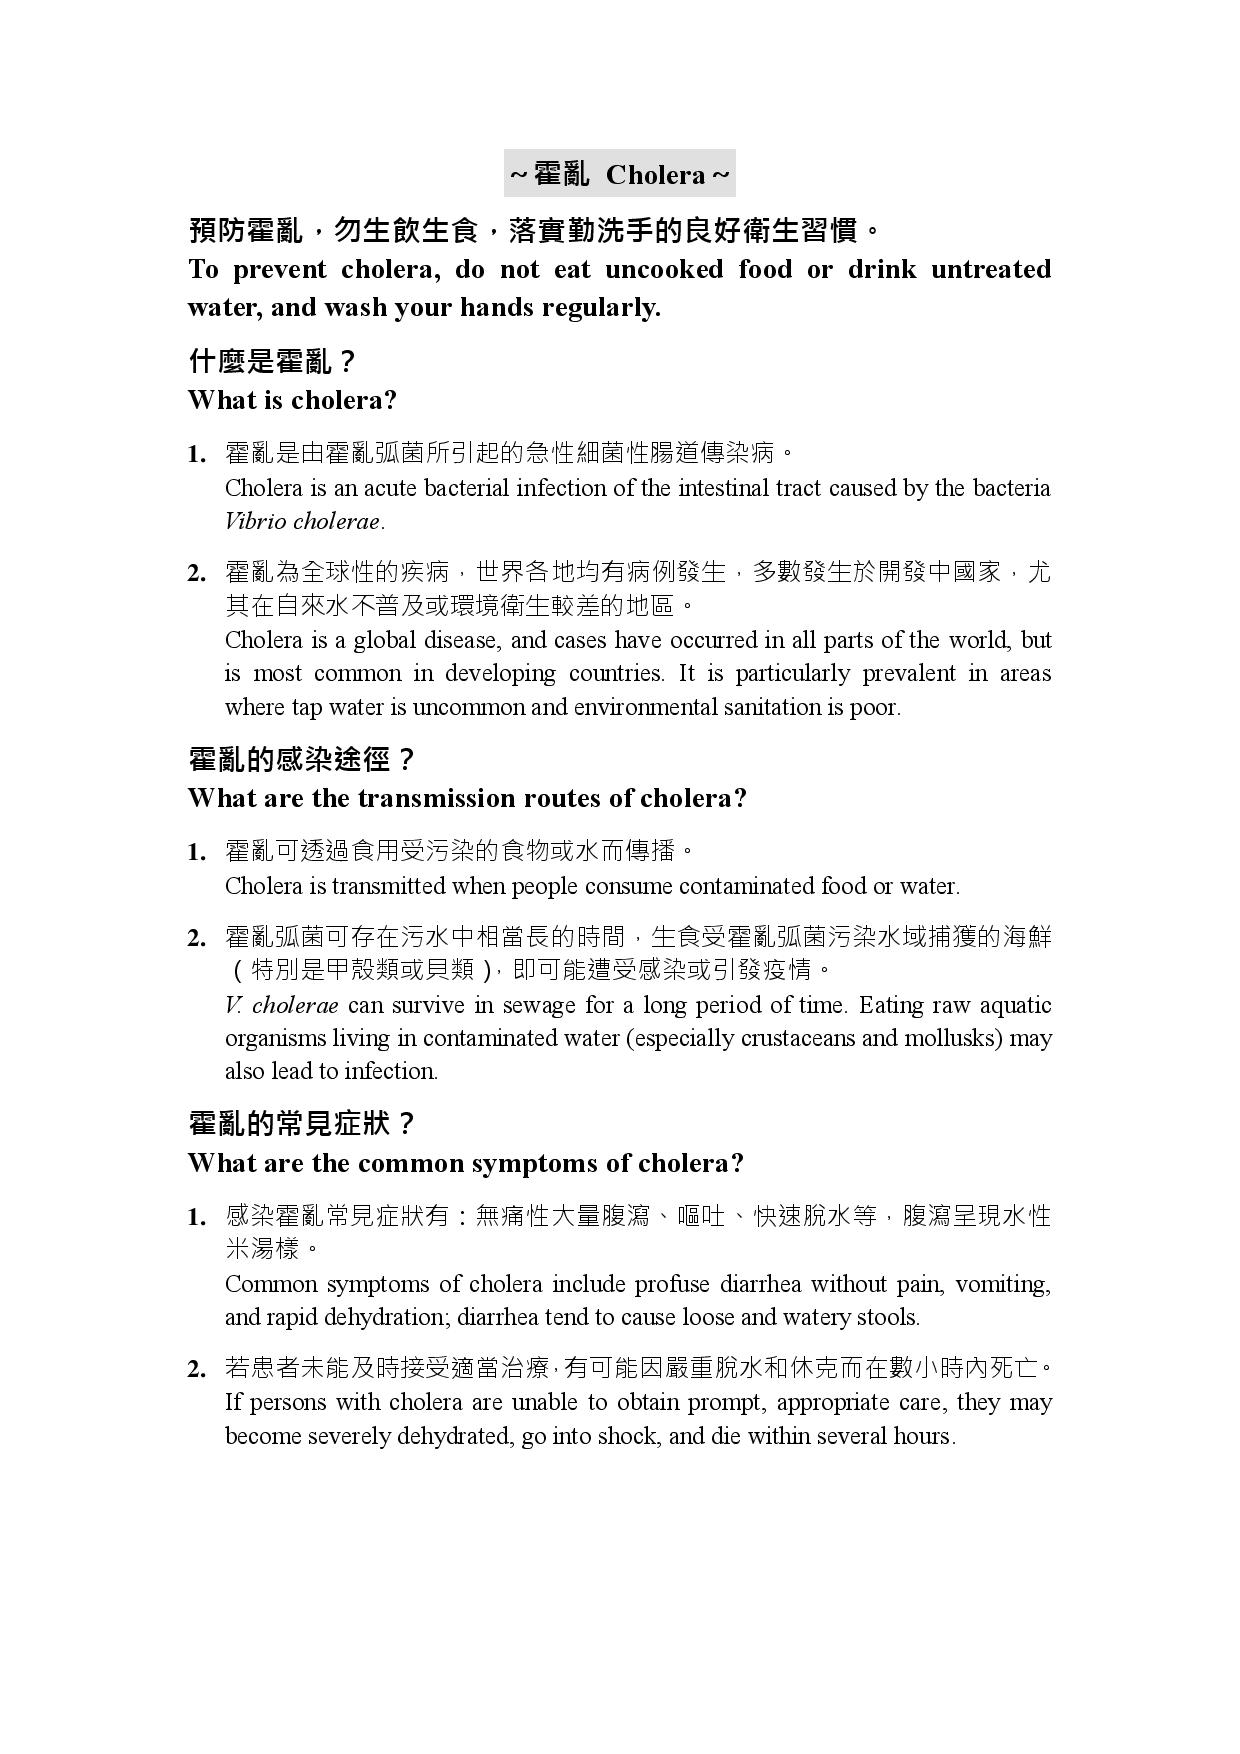 詳如附件【click me】To prevent cholera(Page 1)預防霍亂(英文)‌